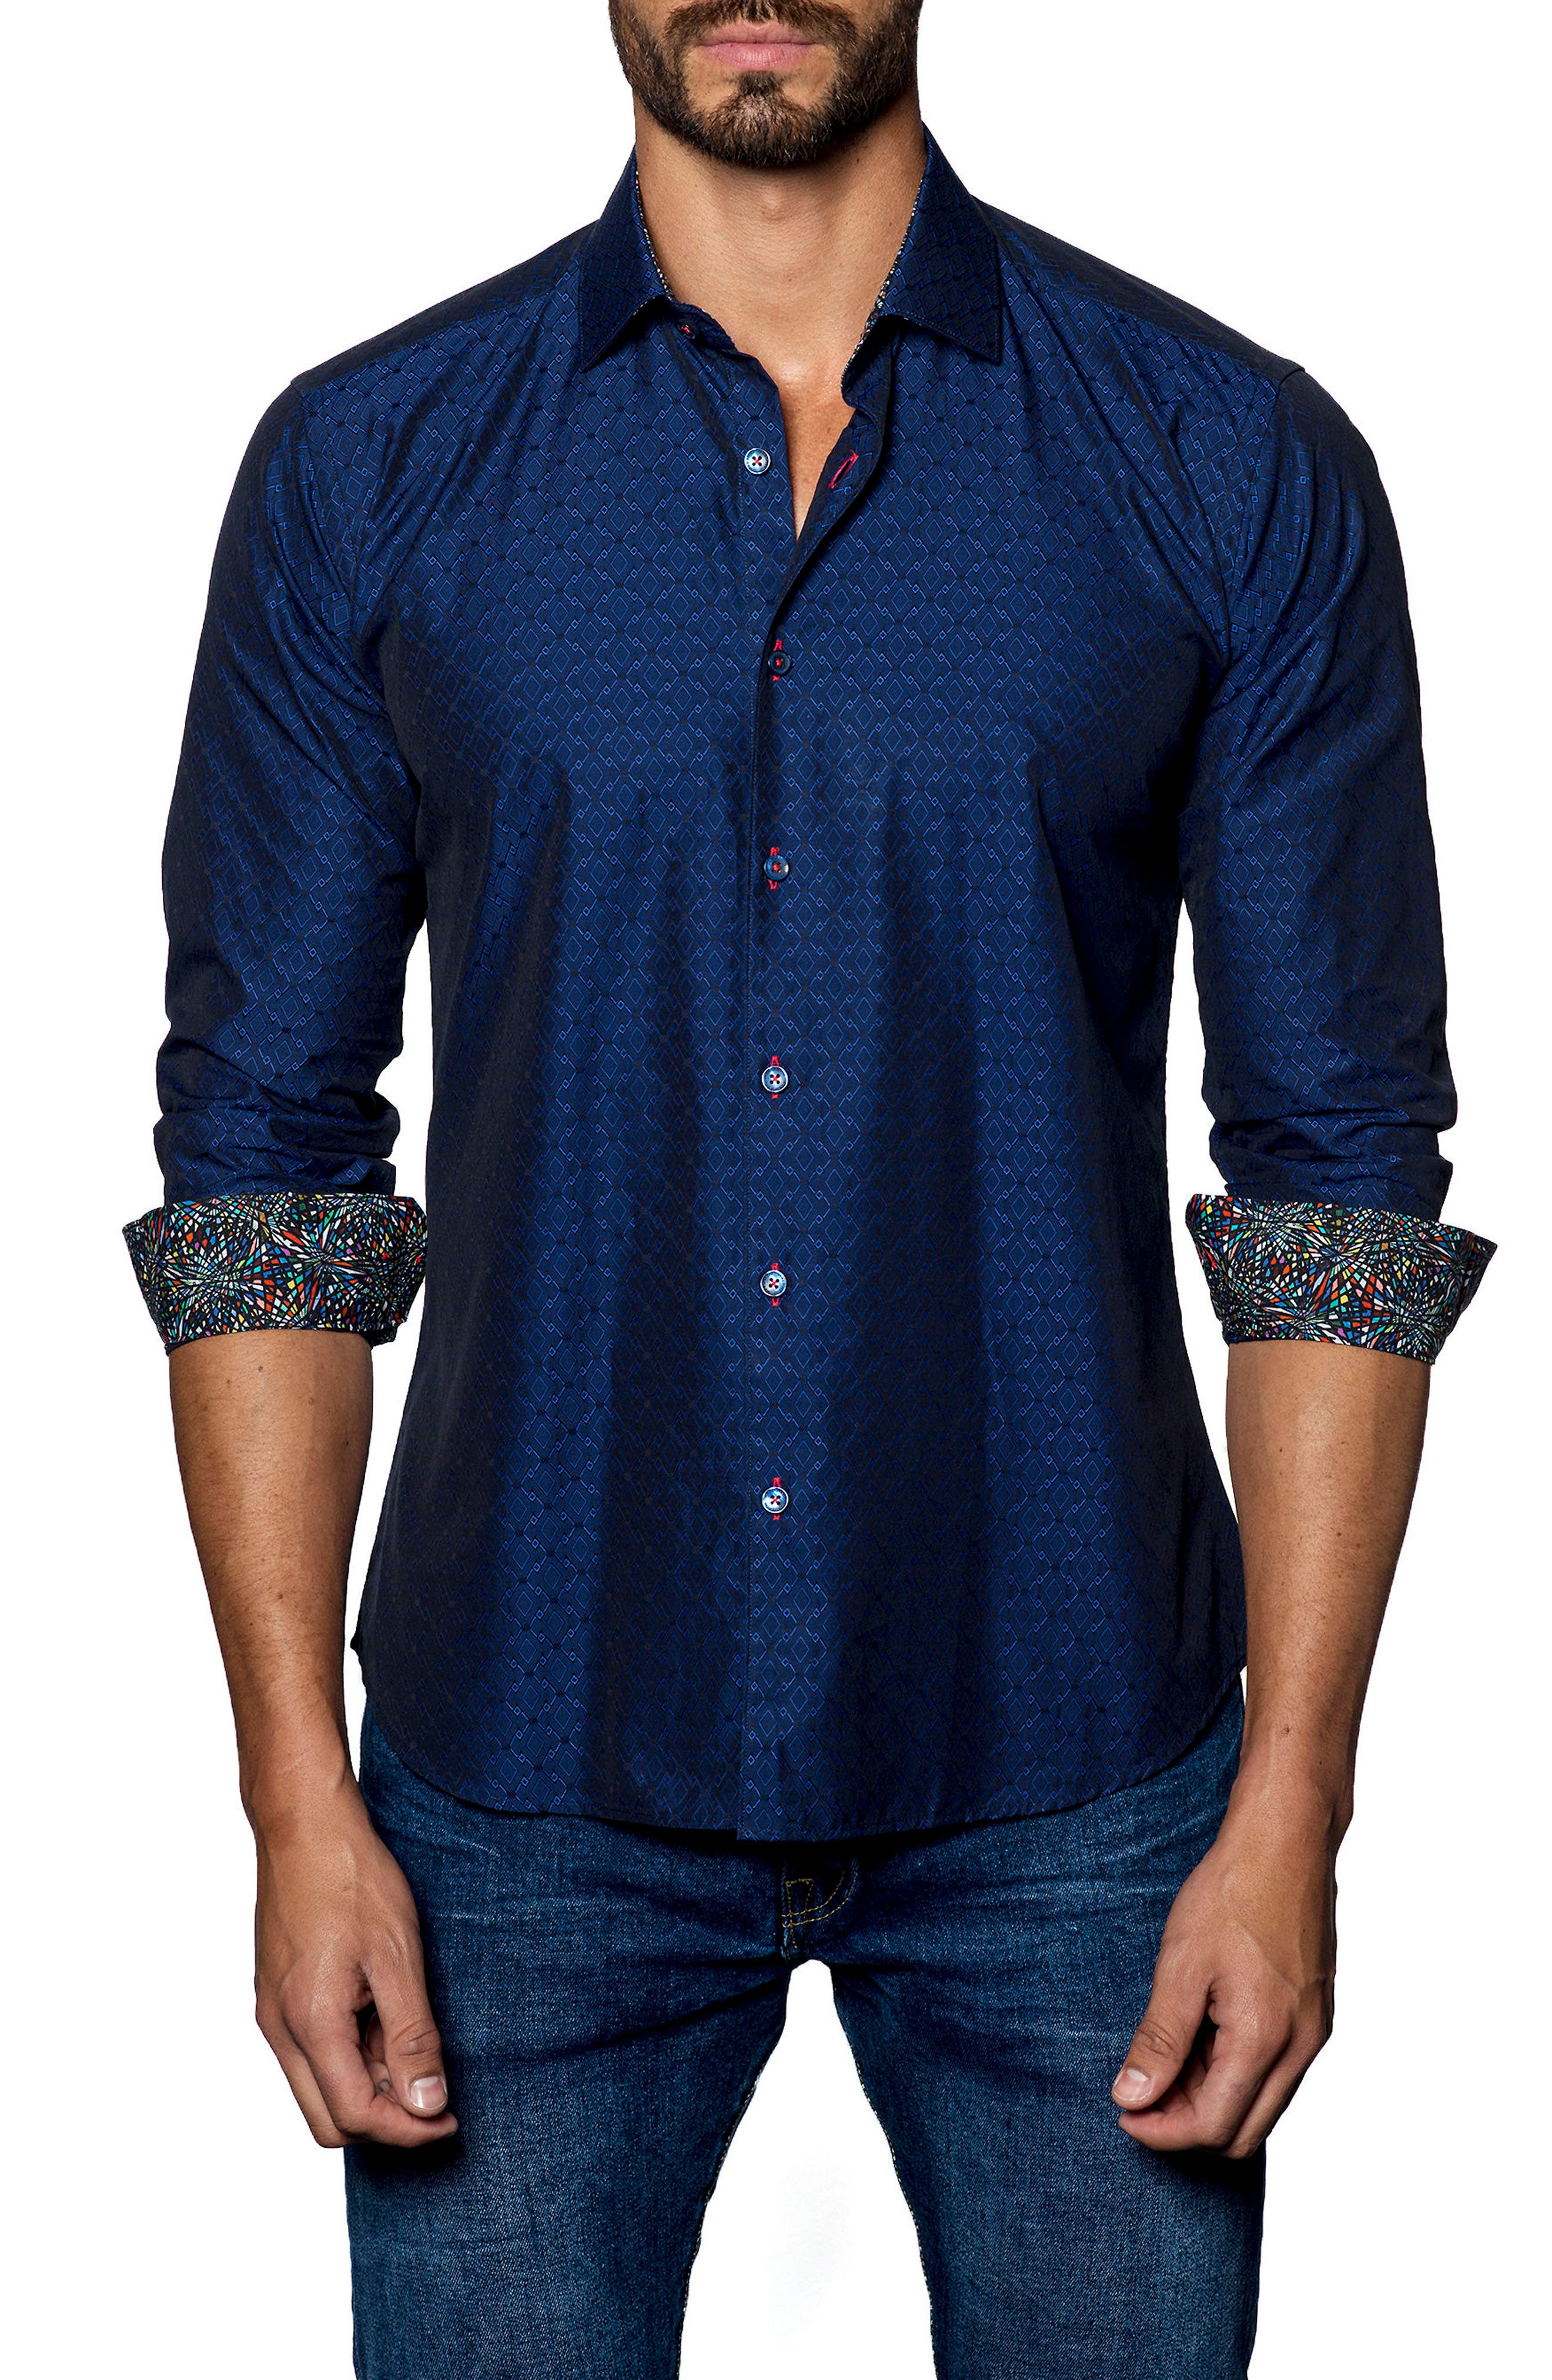 Alternate Image 1 Selected - Jared Lang Trim Fit Solid Sport Shirt